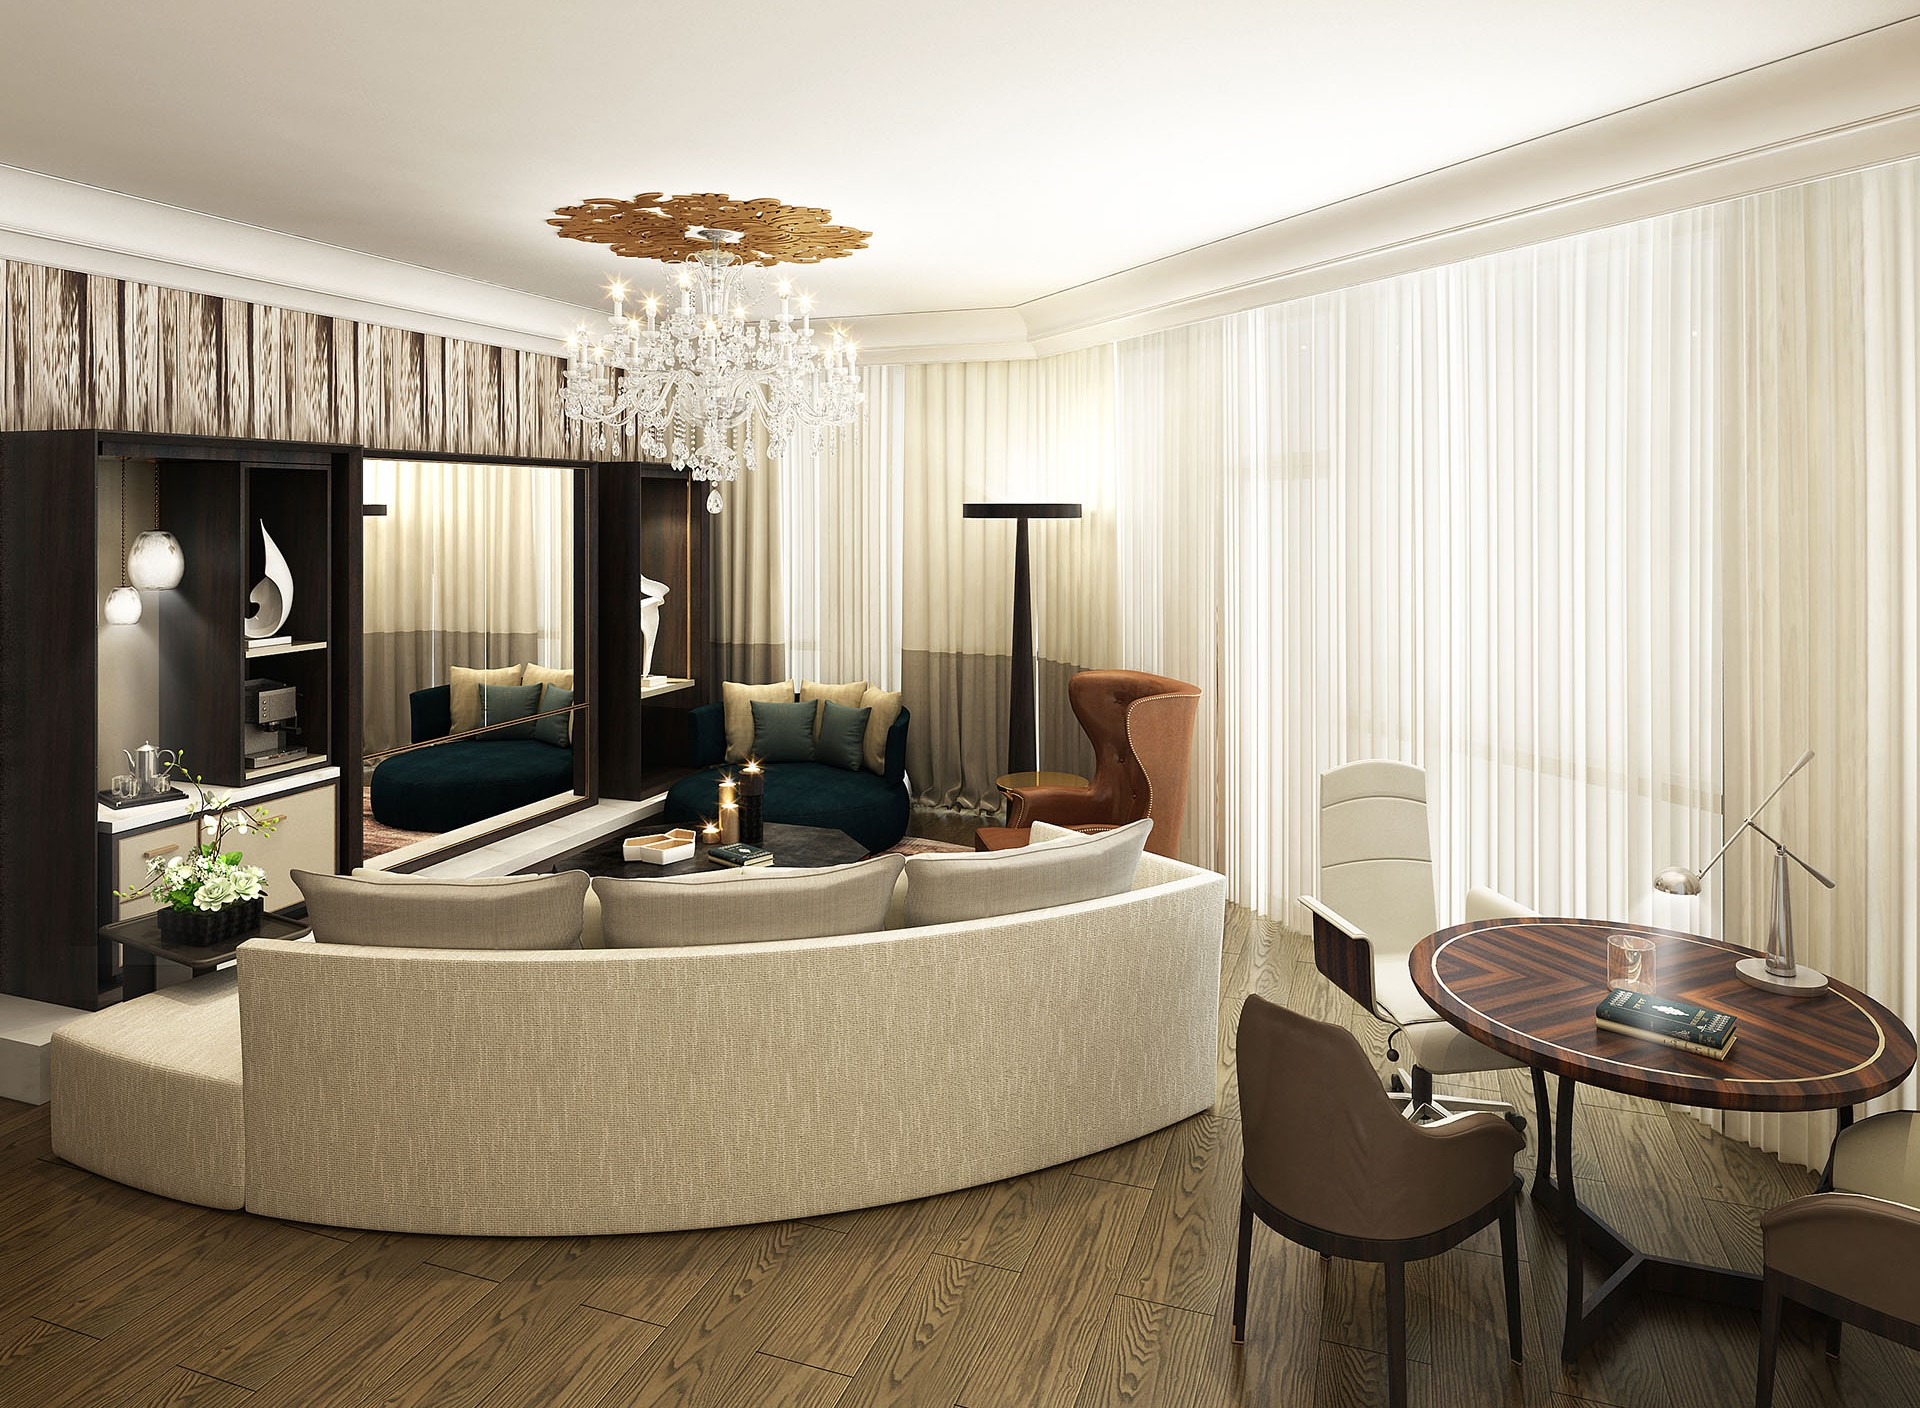 luxury hotel, qatar | the gettys group